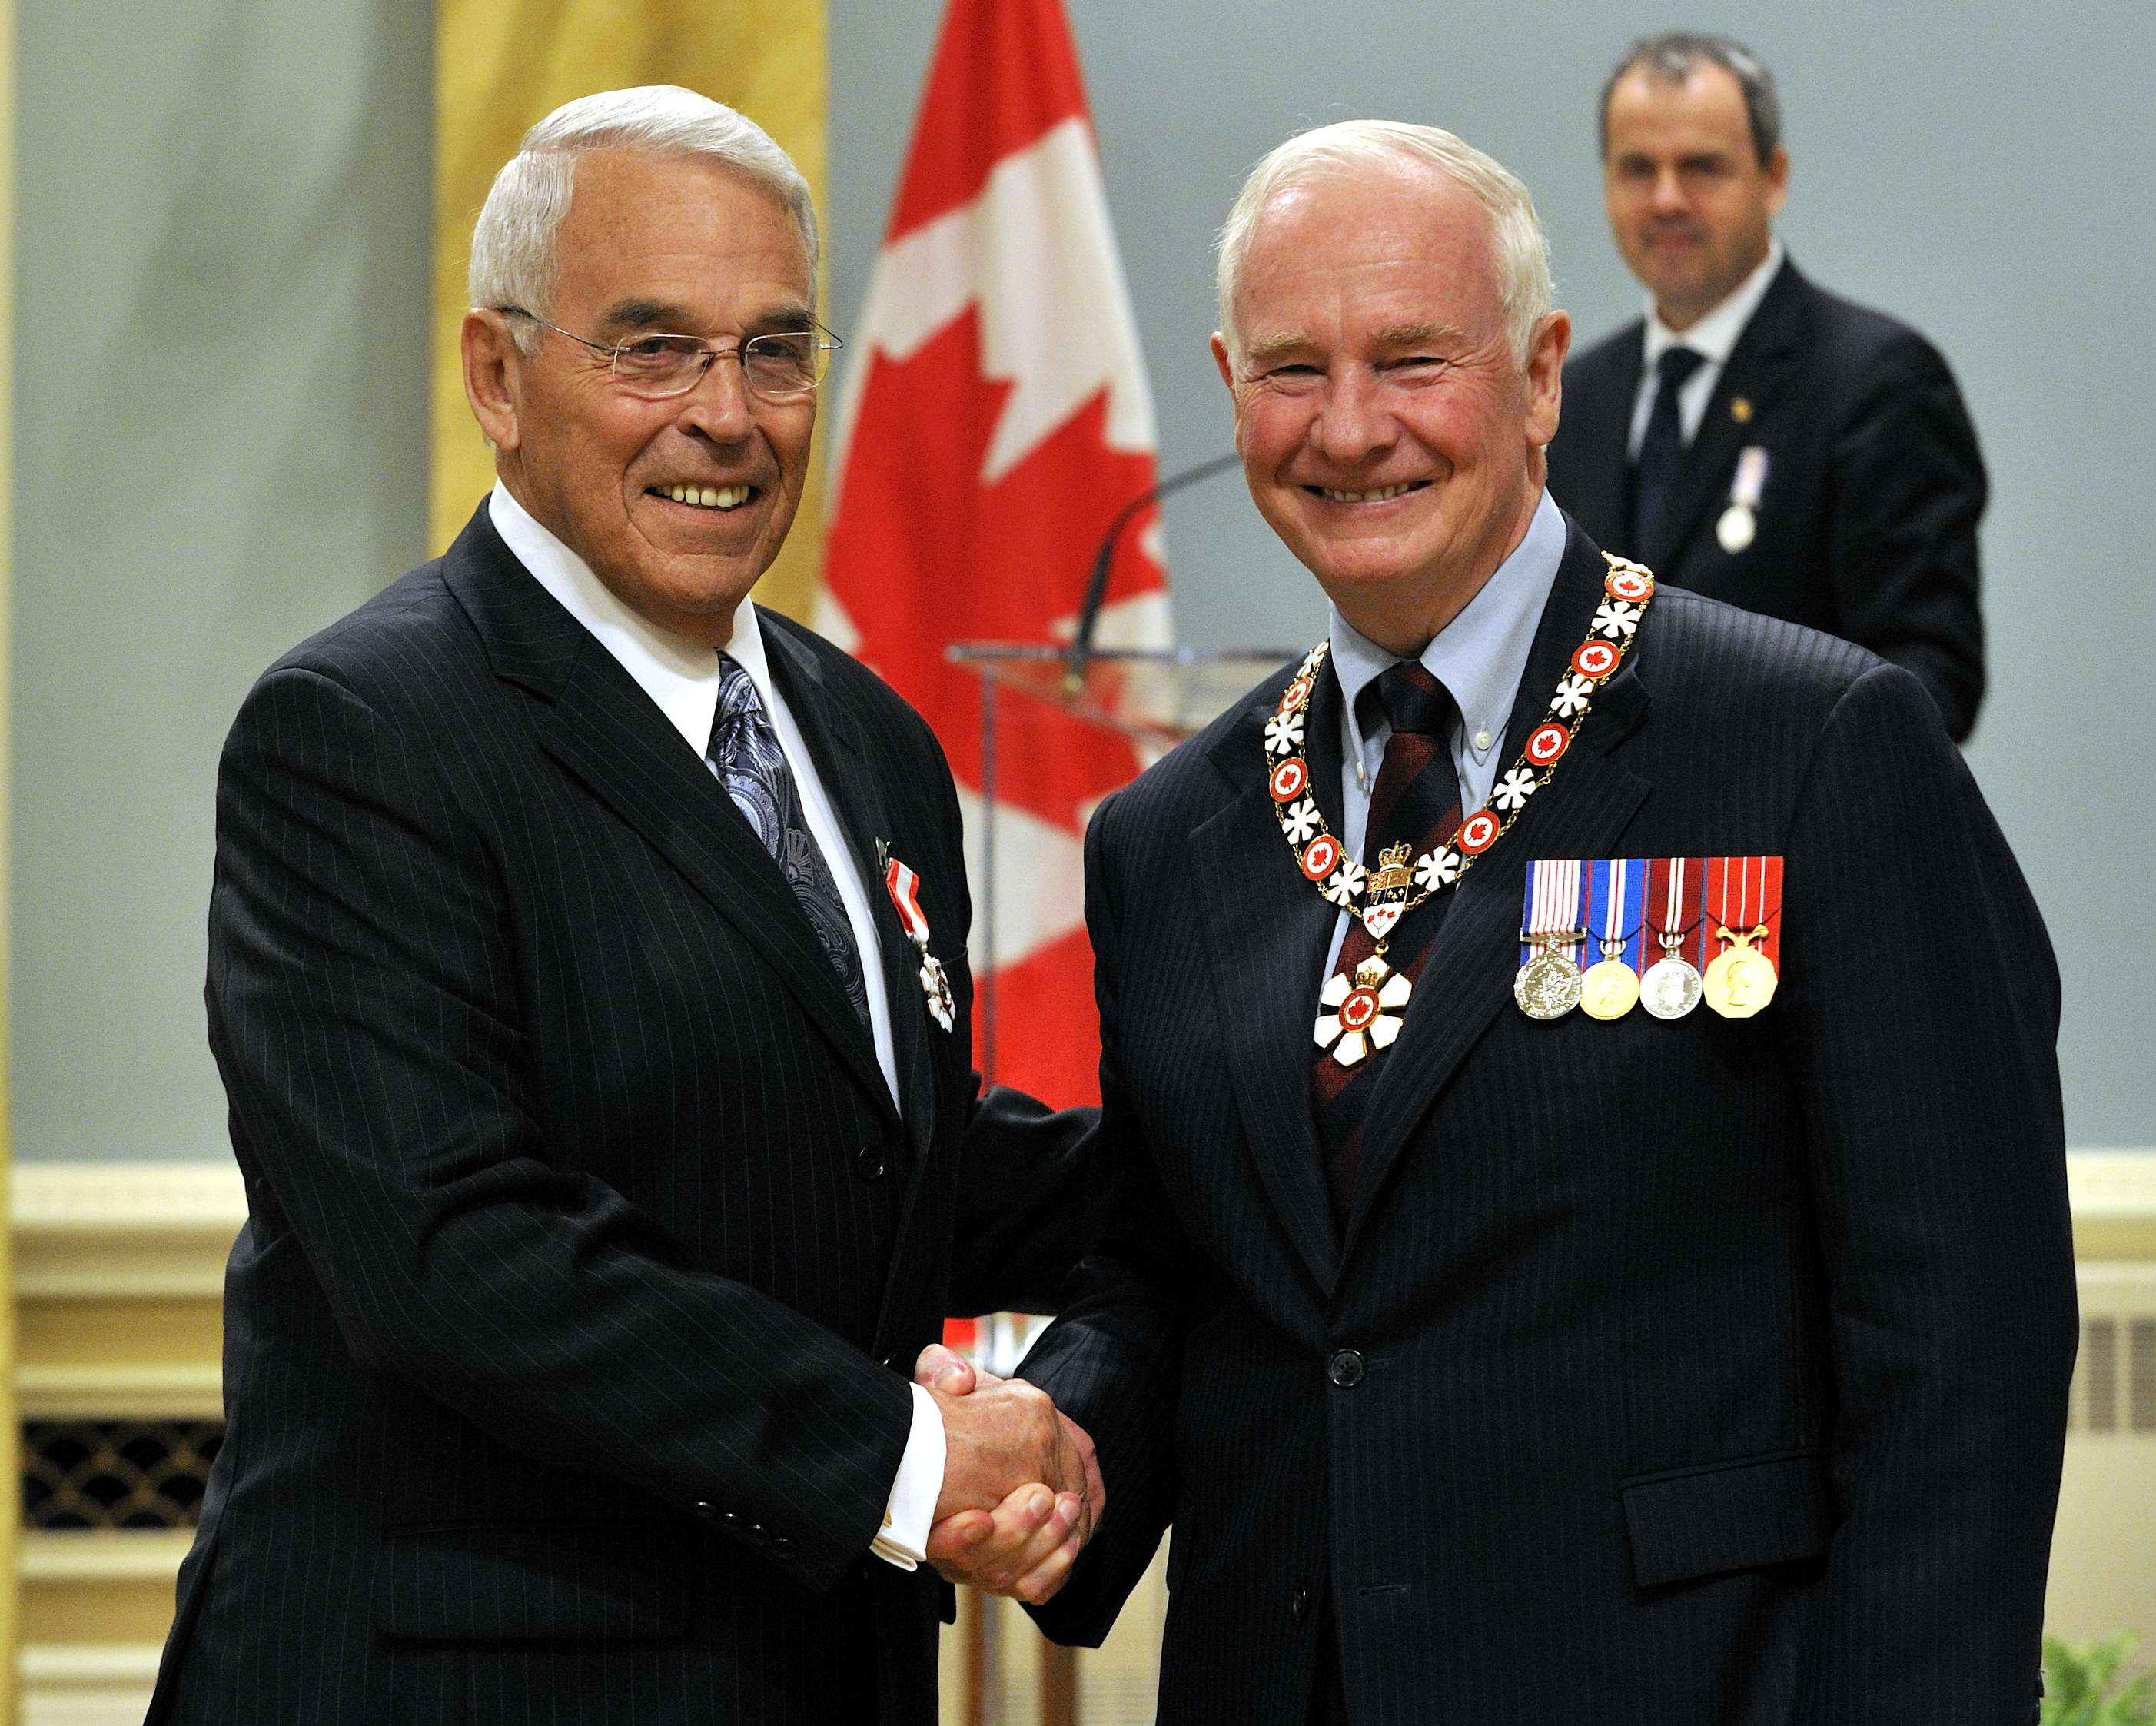 The Honourable Benoît Bouchard, P.C., C.M. (Roberval, Quebec) has served his country with dedication. Known as someone who brings people together, he was responsible for various portfolios as a federal politician. He notably distinguished himself as chair of the Transportation Safety Board of Canada, helping to build its reputation through the quality of its investigations and by promoting security. He is also known as a great listener, putting his diplomatic talents to use as ambassador to France and as chief federal negotiator in territorial negotiations with the Innu people of Quebec.